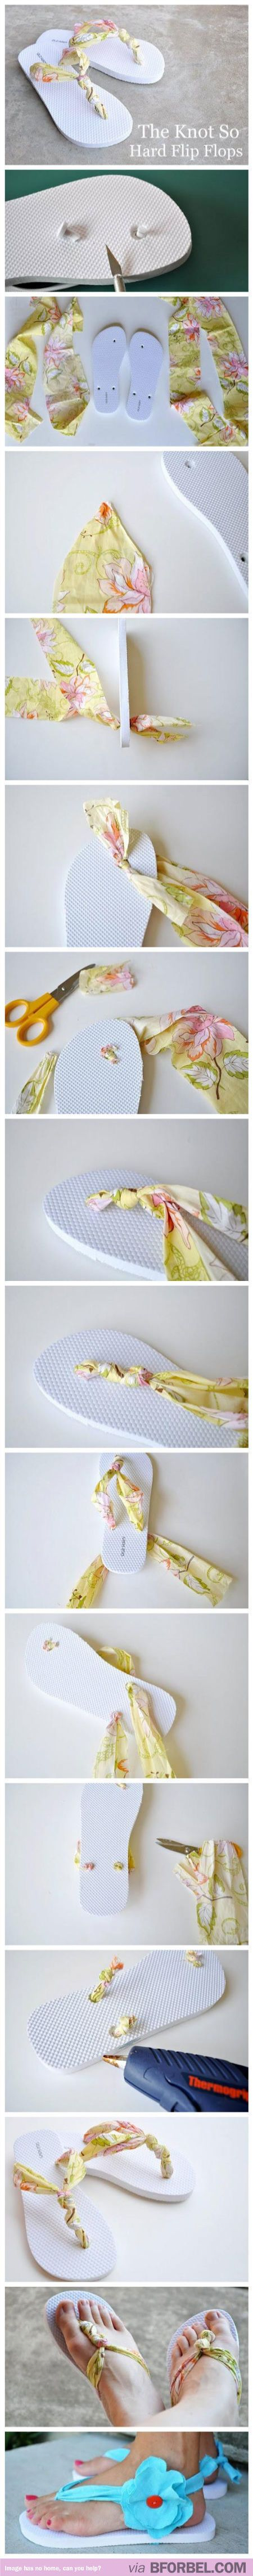 DIY Flip Flops. Looks comfortable and pretty too! I keep the grandaughters busy.